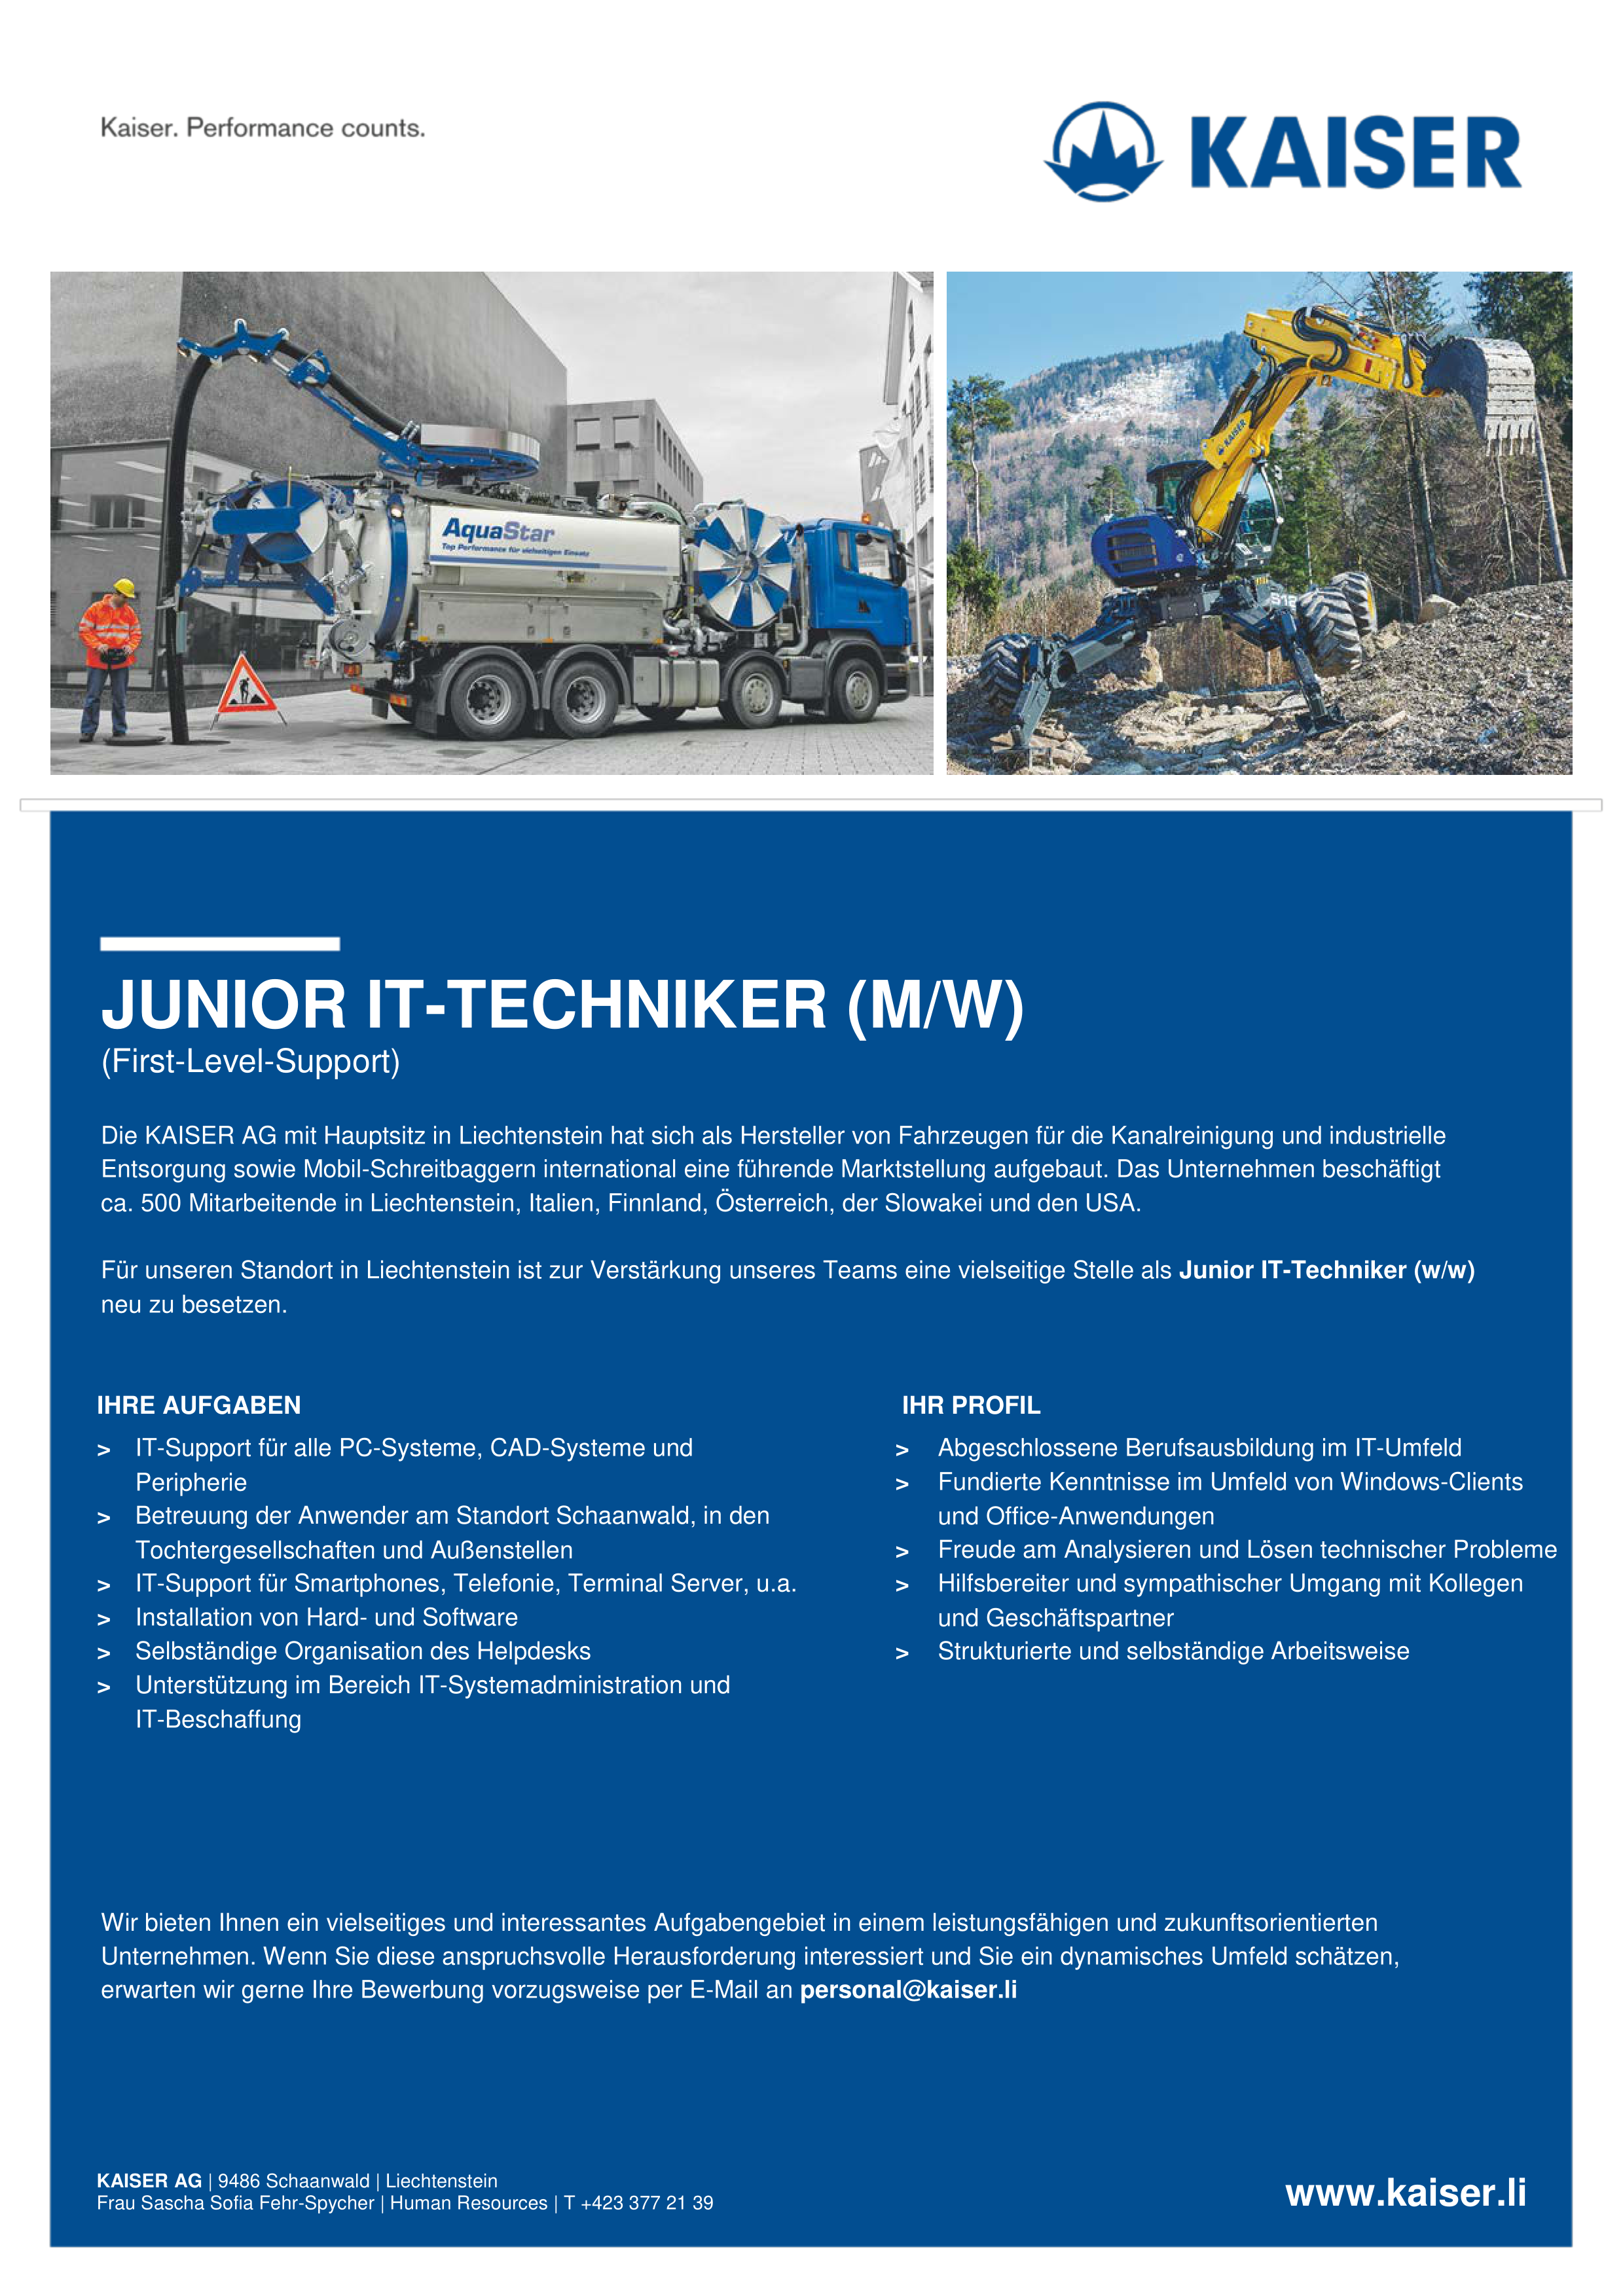 JUNIOR IT-TECHNIKER (M/W)